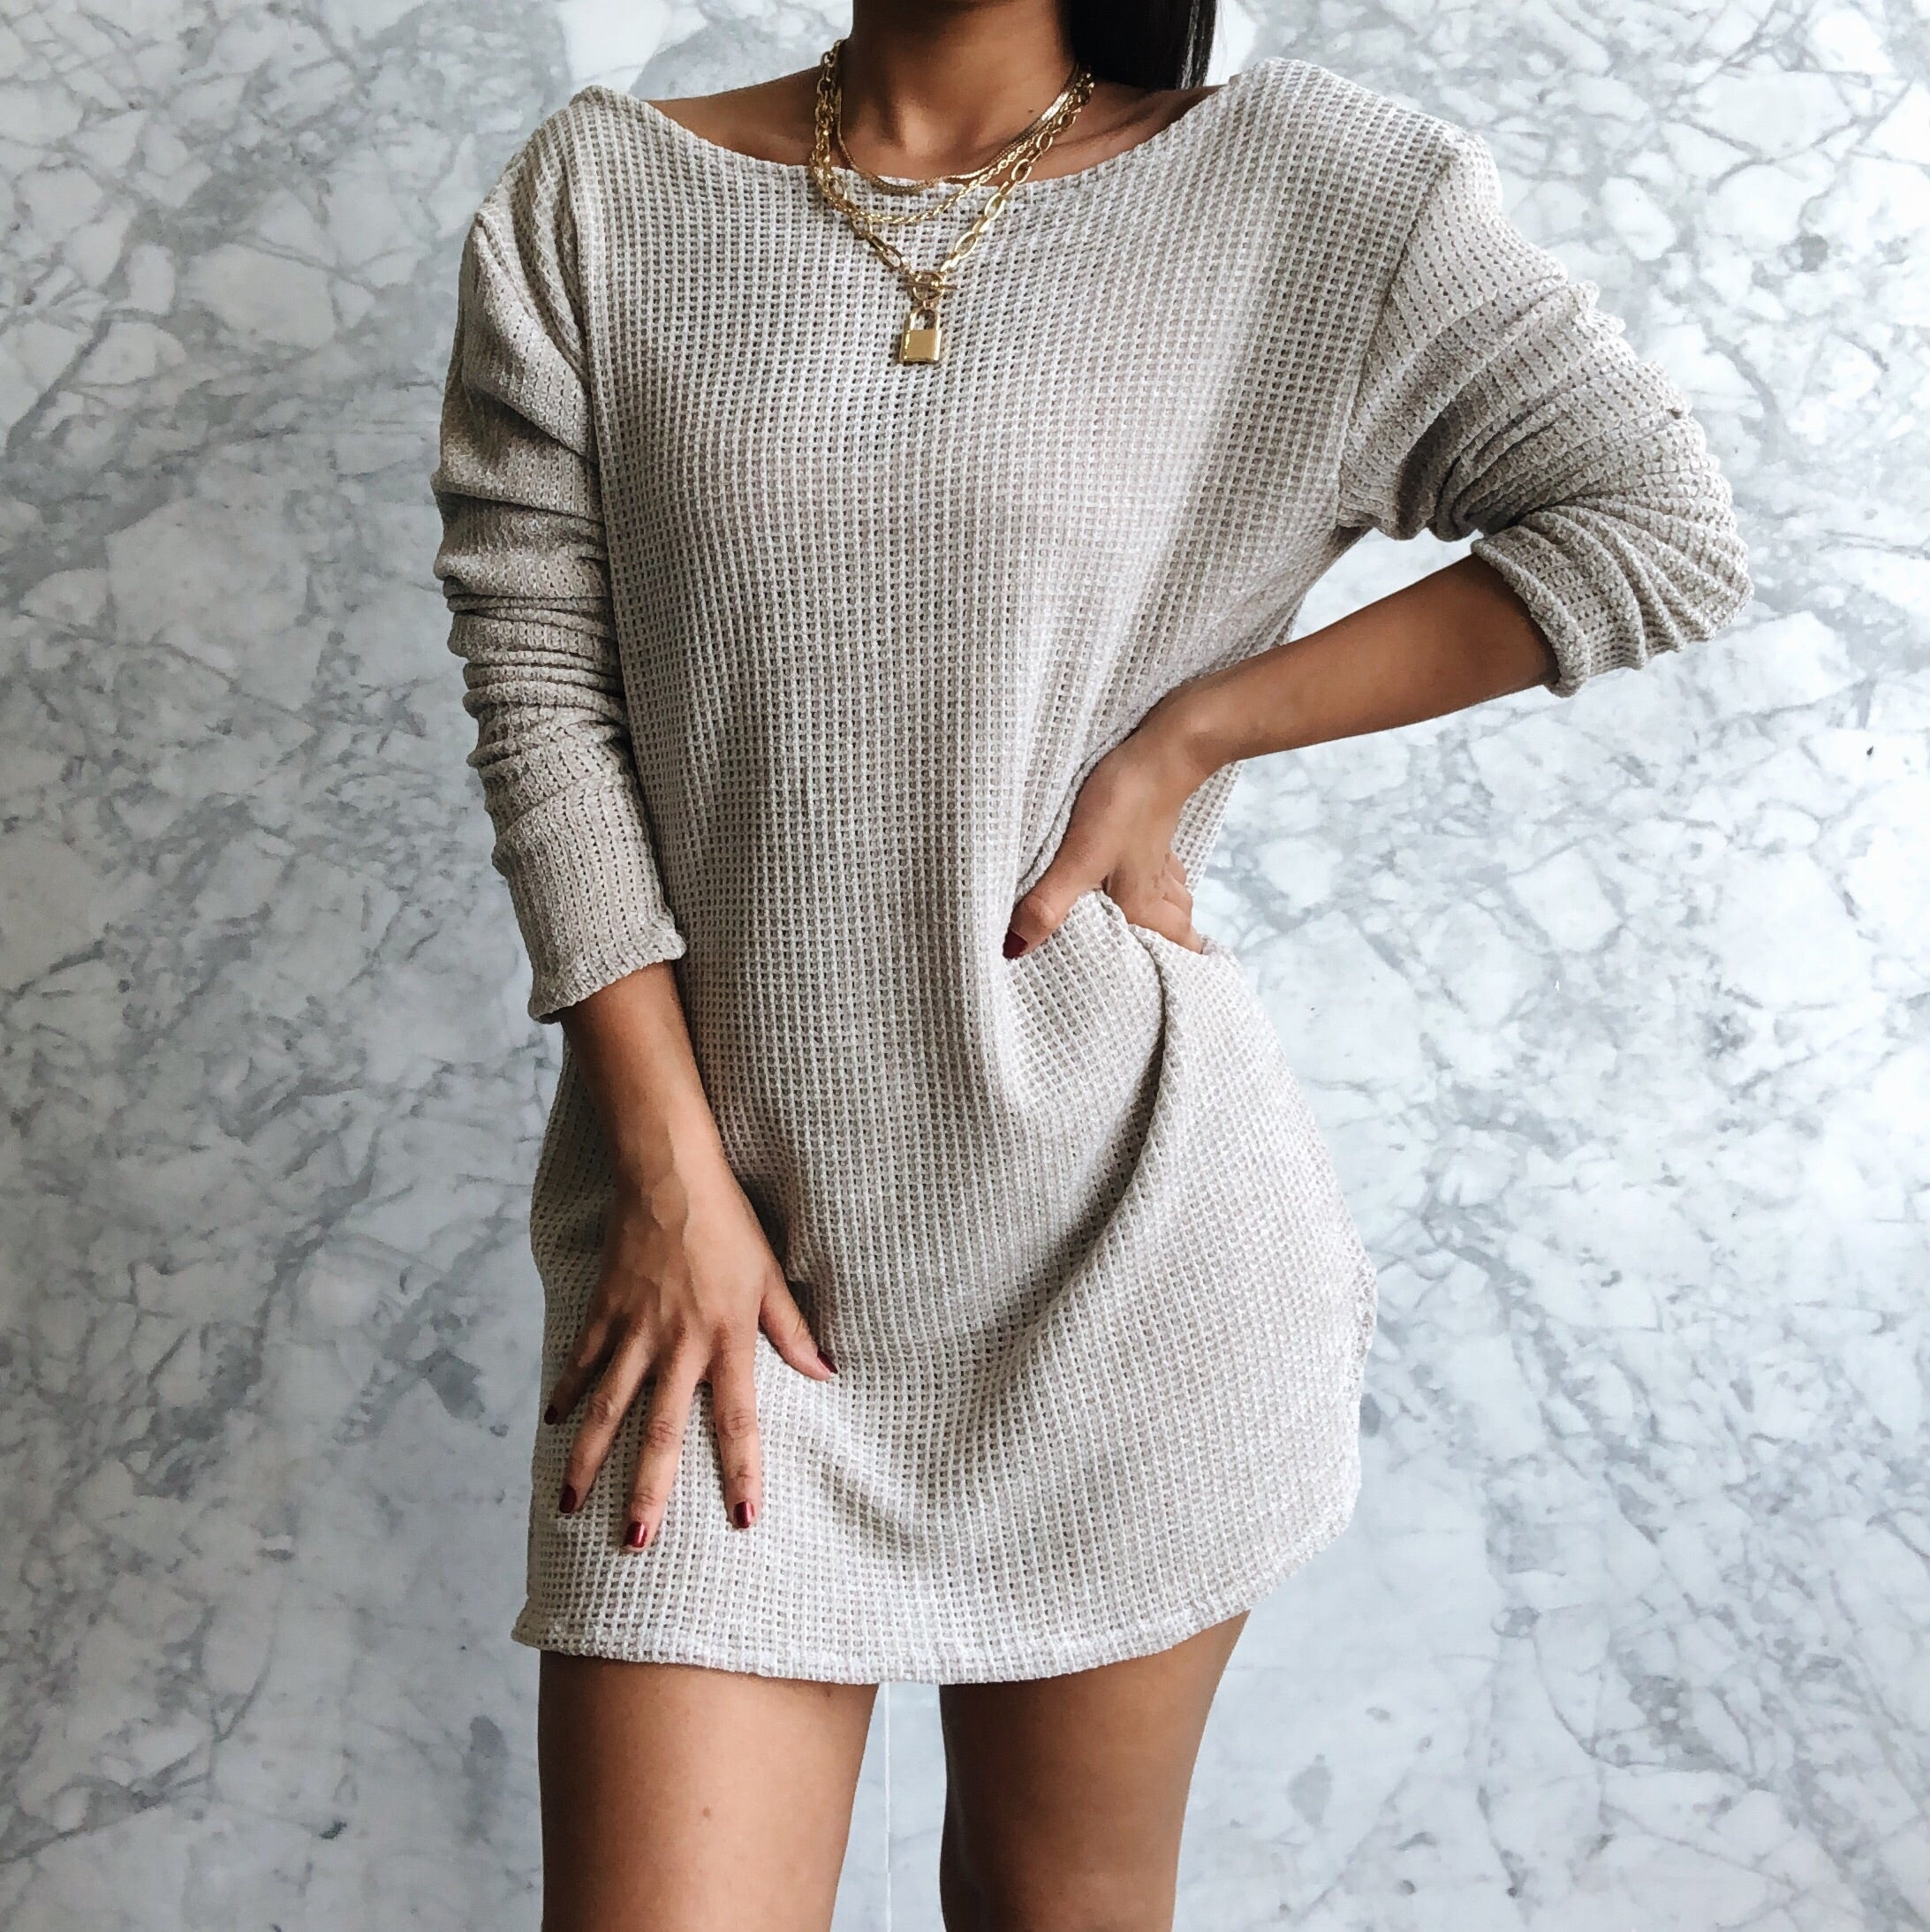 RESTOCK Cuddle Me Tunic Velvet Knit